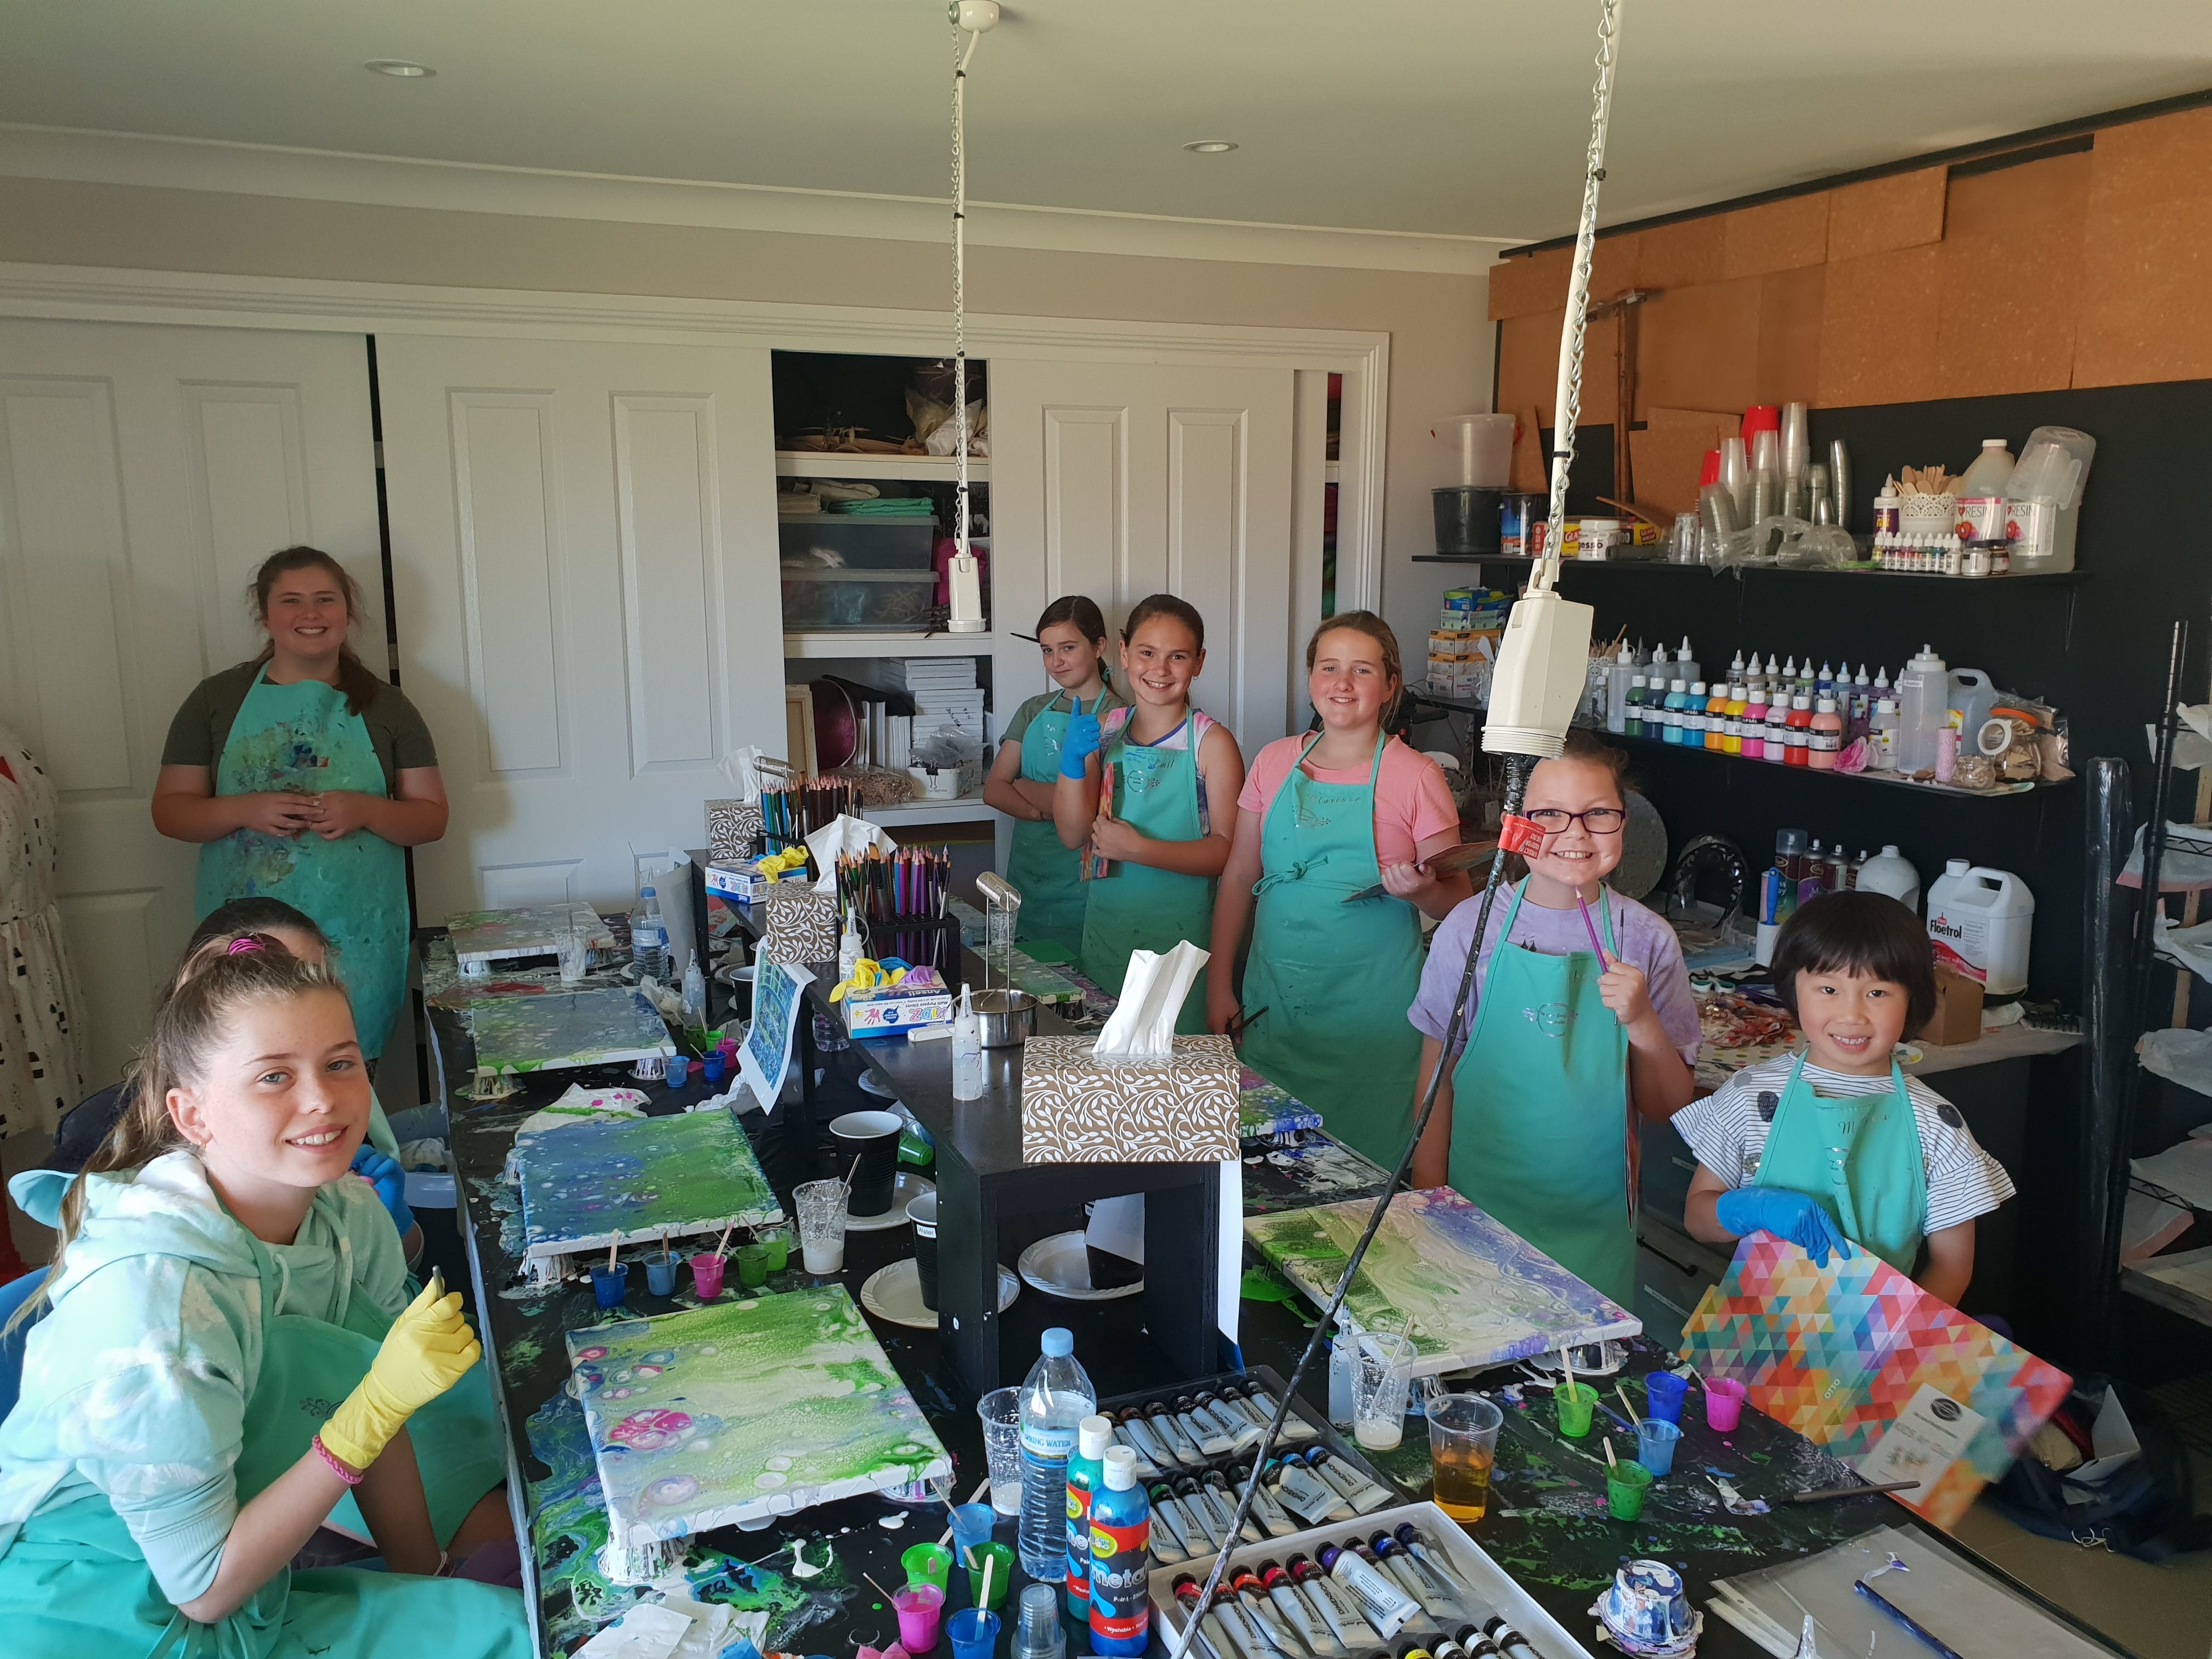 School holidays - Kids art class - Painting - Accommodation Melbourne